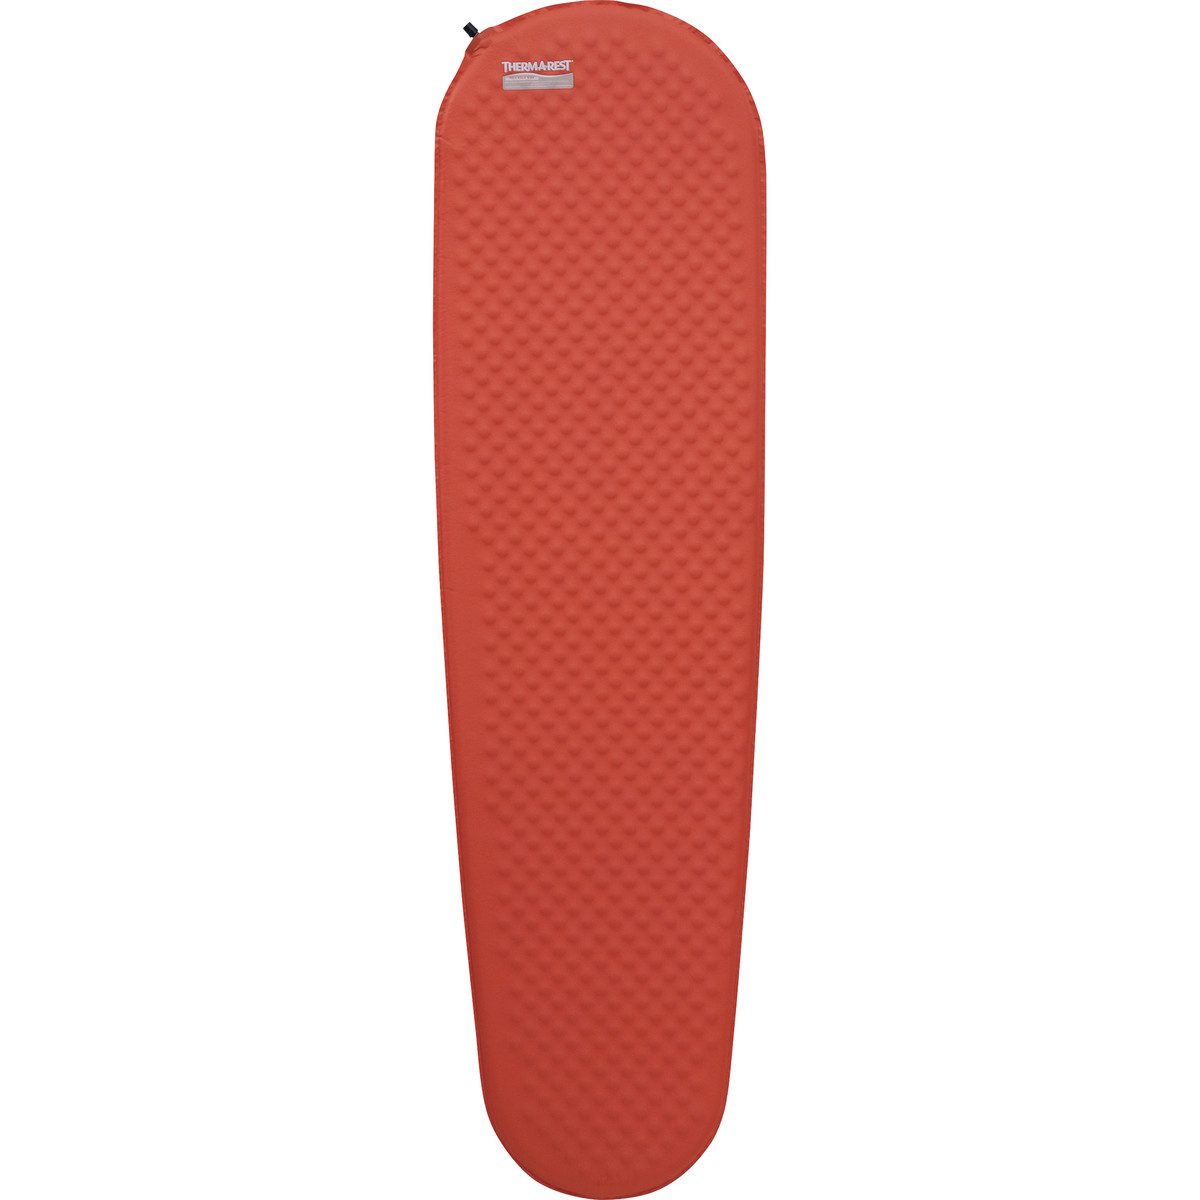 thermarest sleeping pad